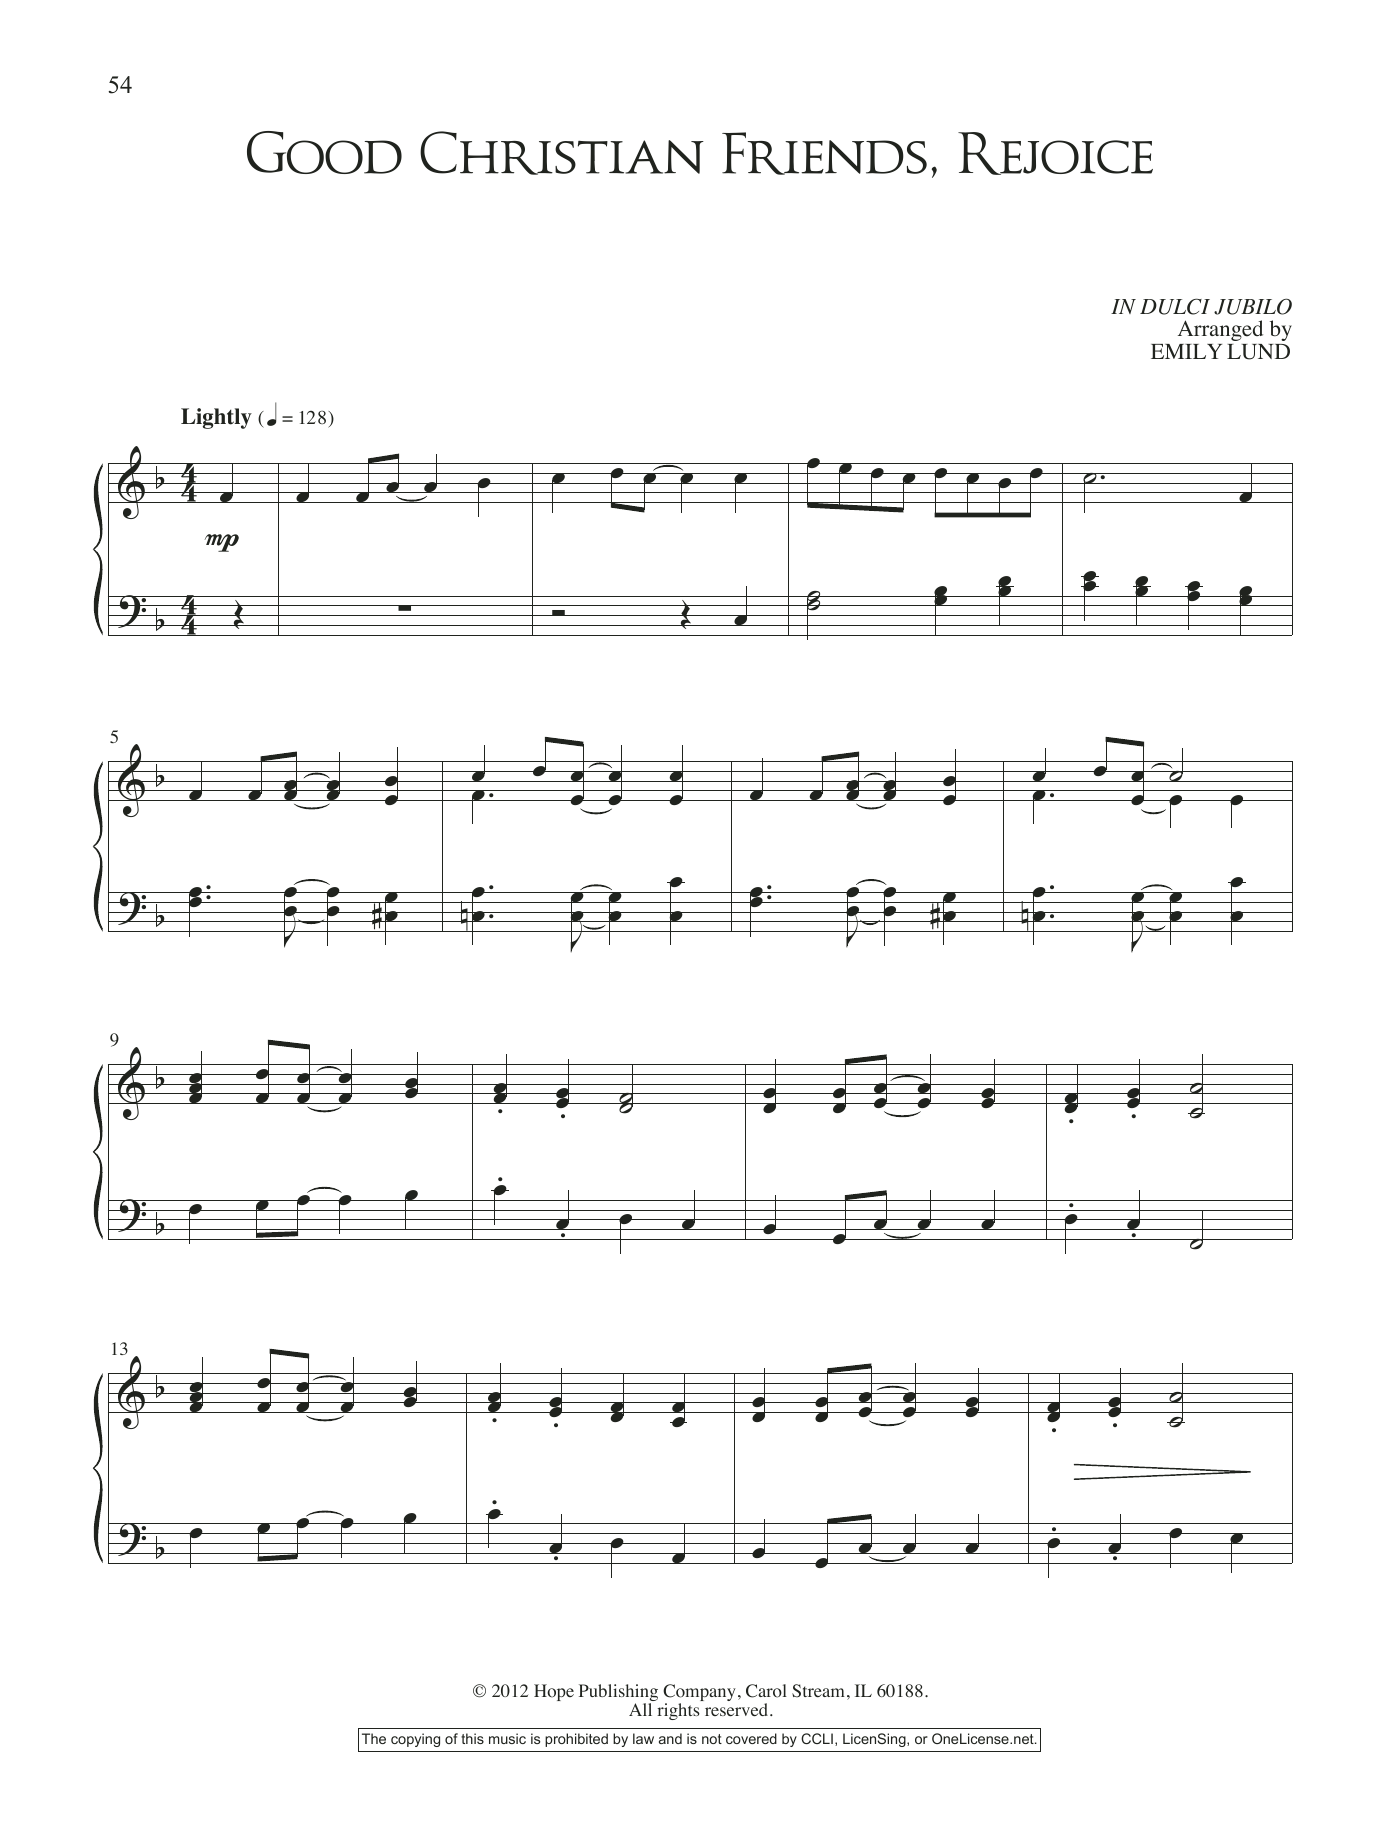 Emily Lund Good Christian Friends, Rejoice sheet music notes and chords. Download Printable PDF.